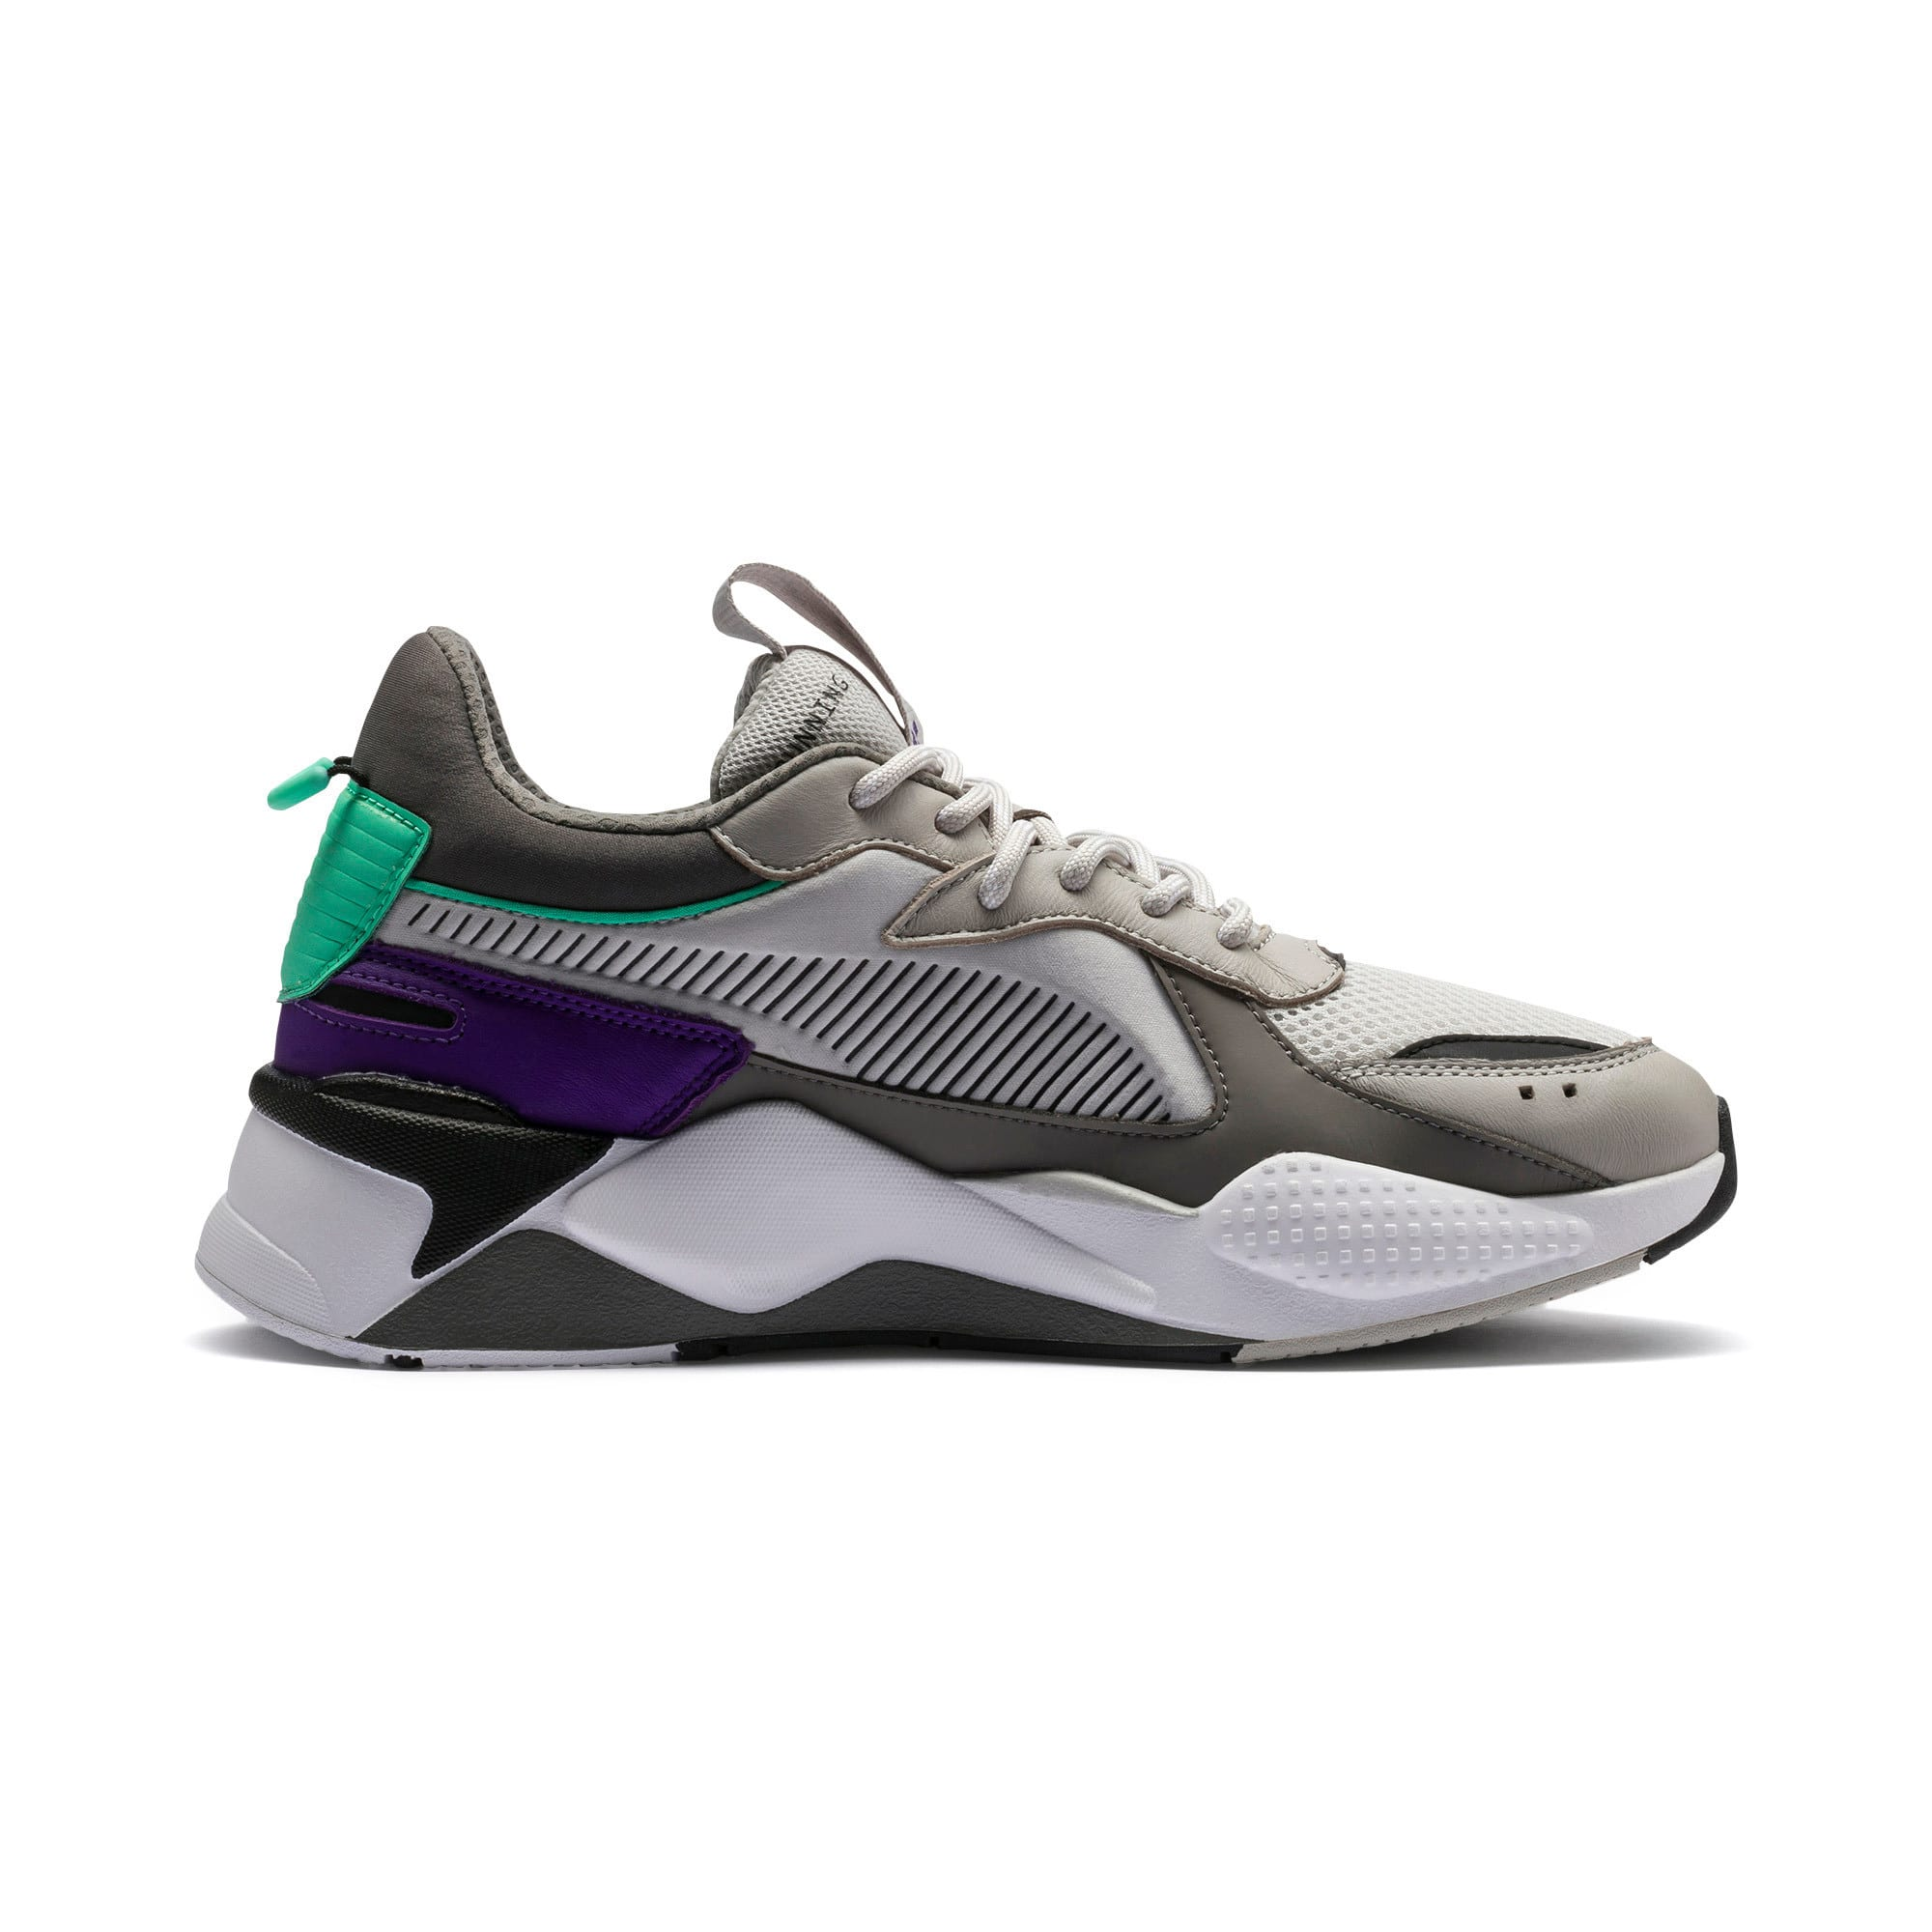 Thumbnail 7 of RS-X Tracks Trainers, Gray Violet-Charcoal Gray, medium